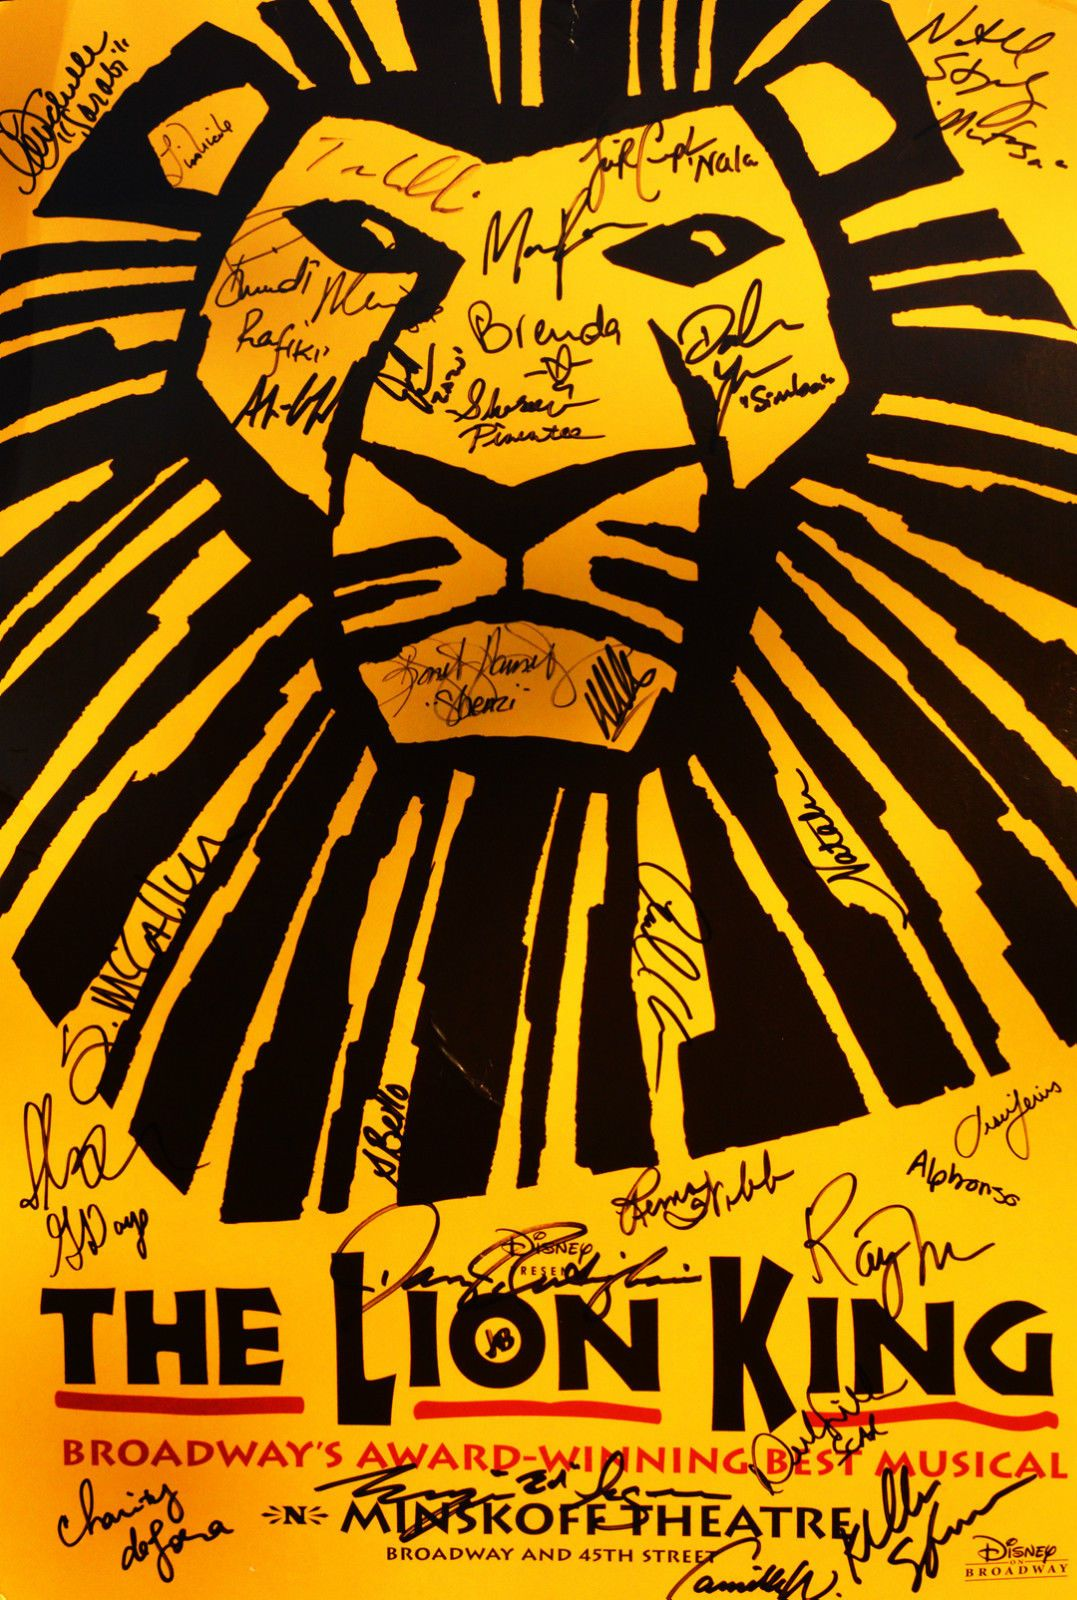 AUTOGRAPHED Richard Ross Poster